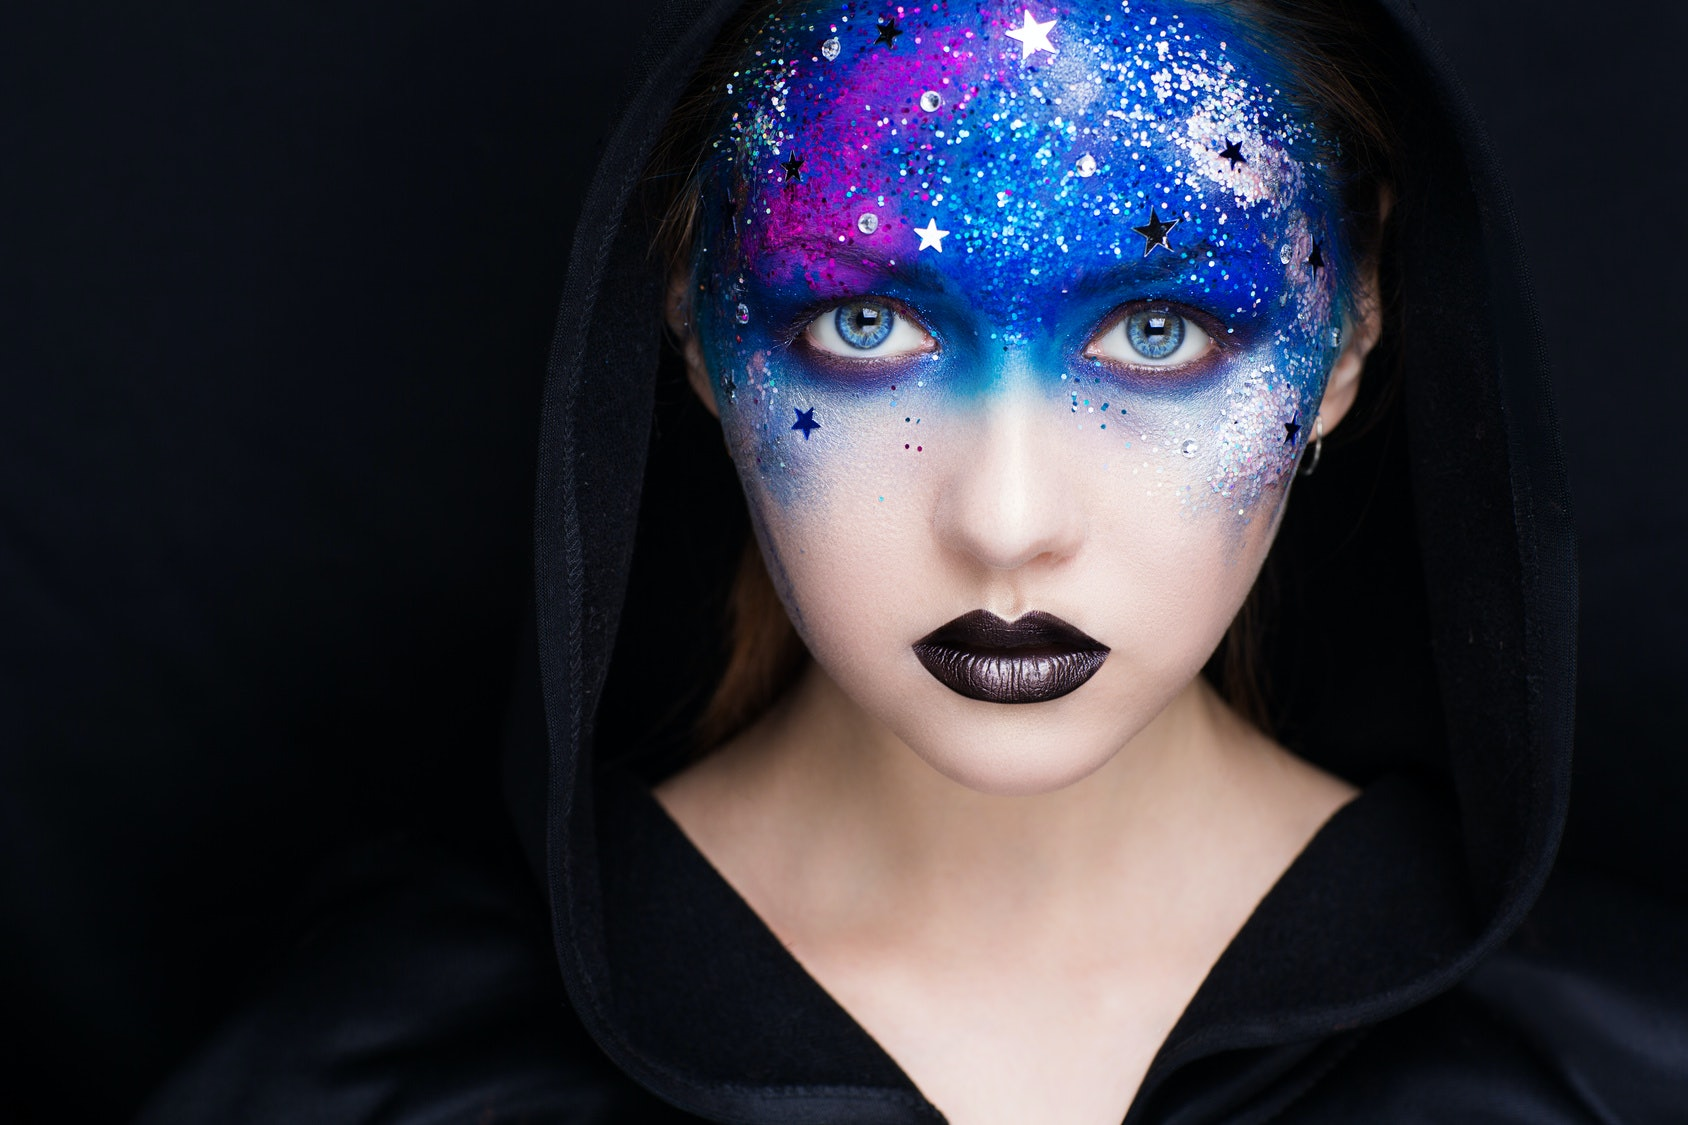 57b8b996e55dd 30 Captions For Alien Costume That Are Out Of This World